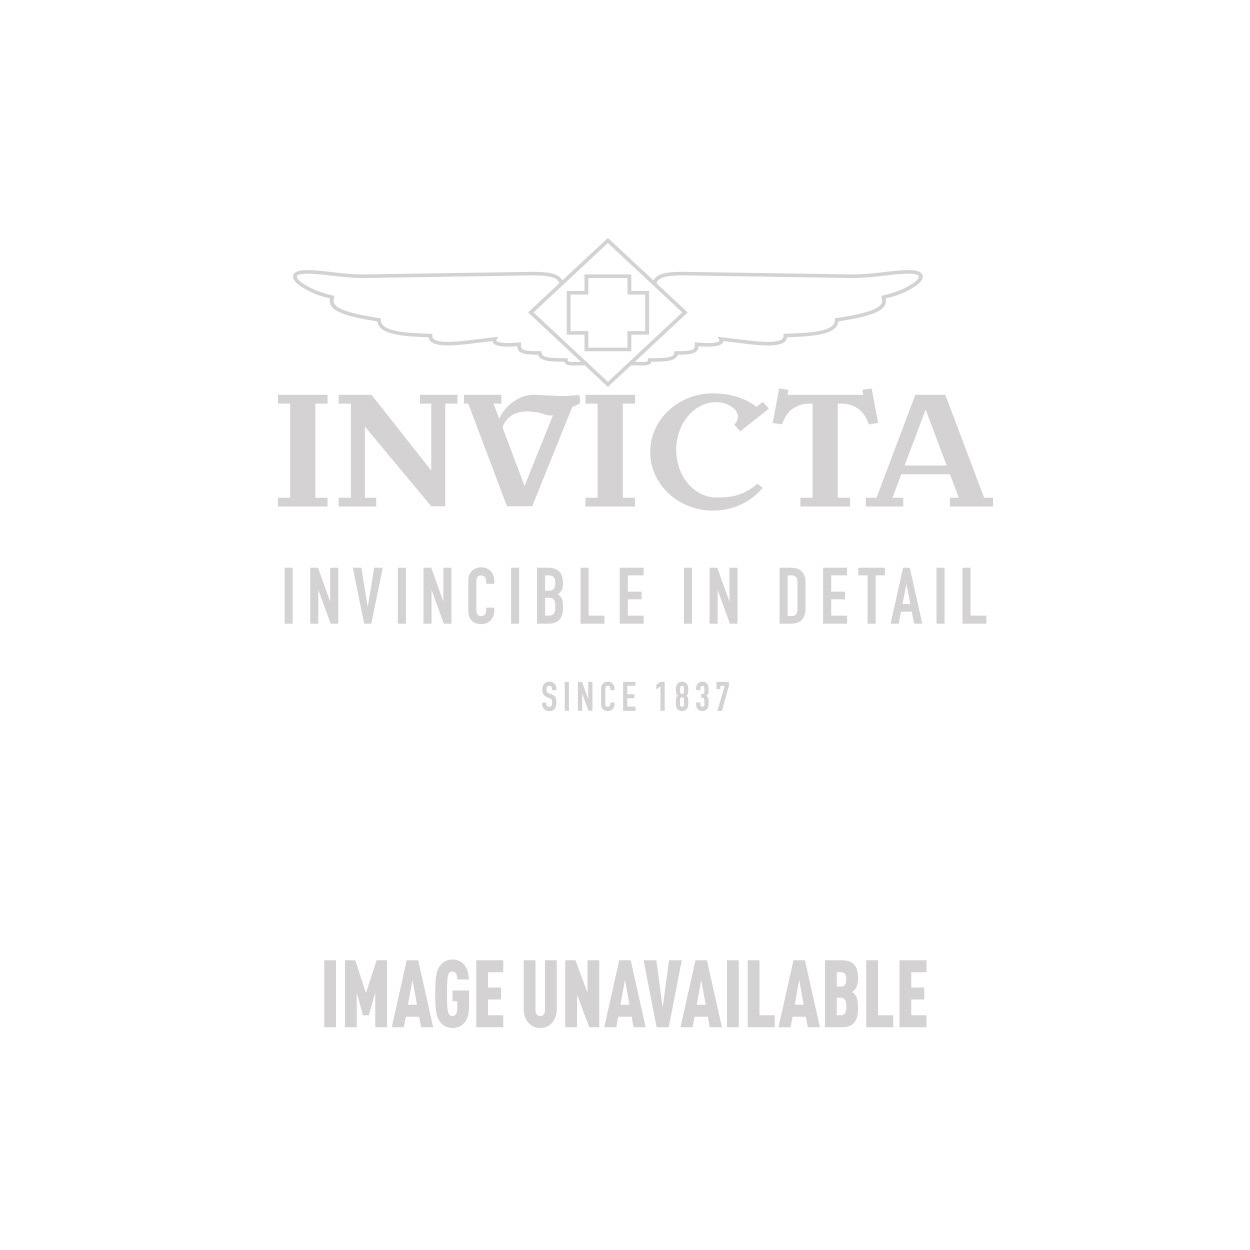 Invicta Sea Hunter Swiss Movement Quartz Watch - Gold case with Gold tone Stainless Steel band - Model 19608